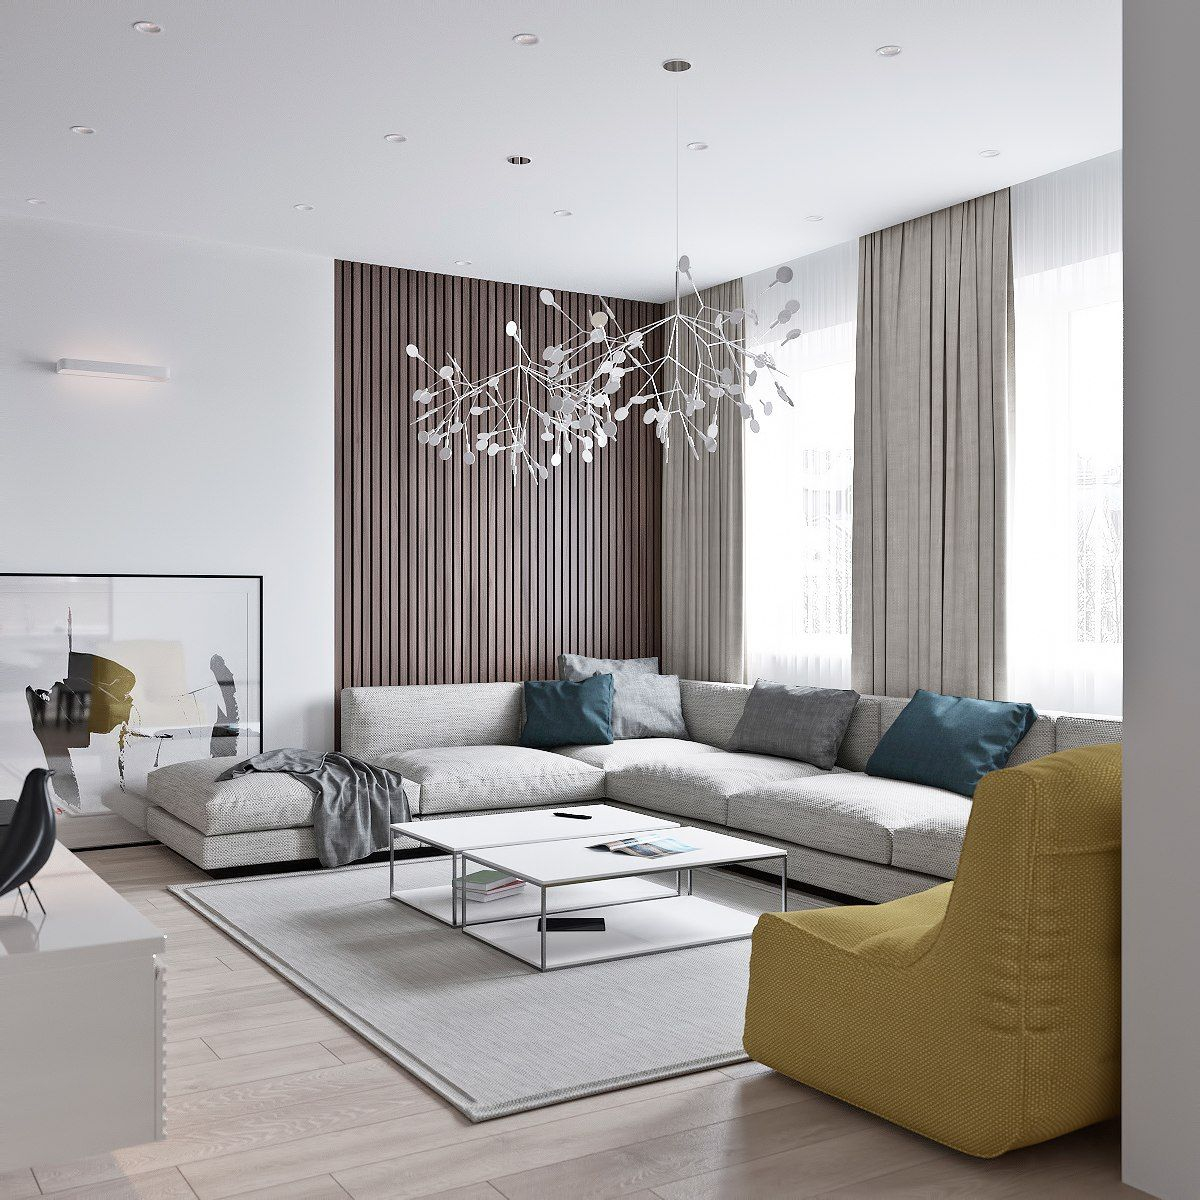 3 Light Interiors With Creative Pops Of Color Elegant Living